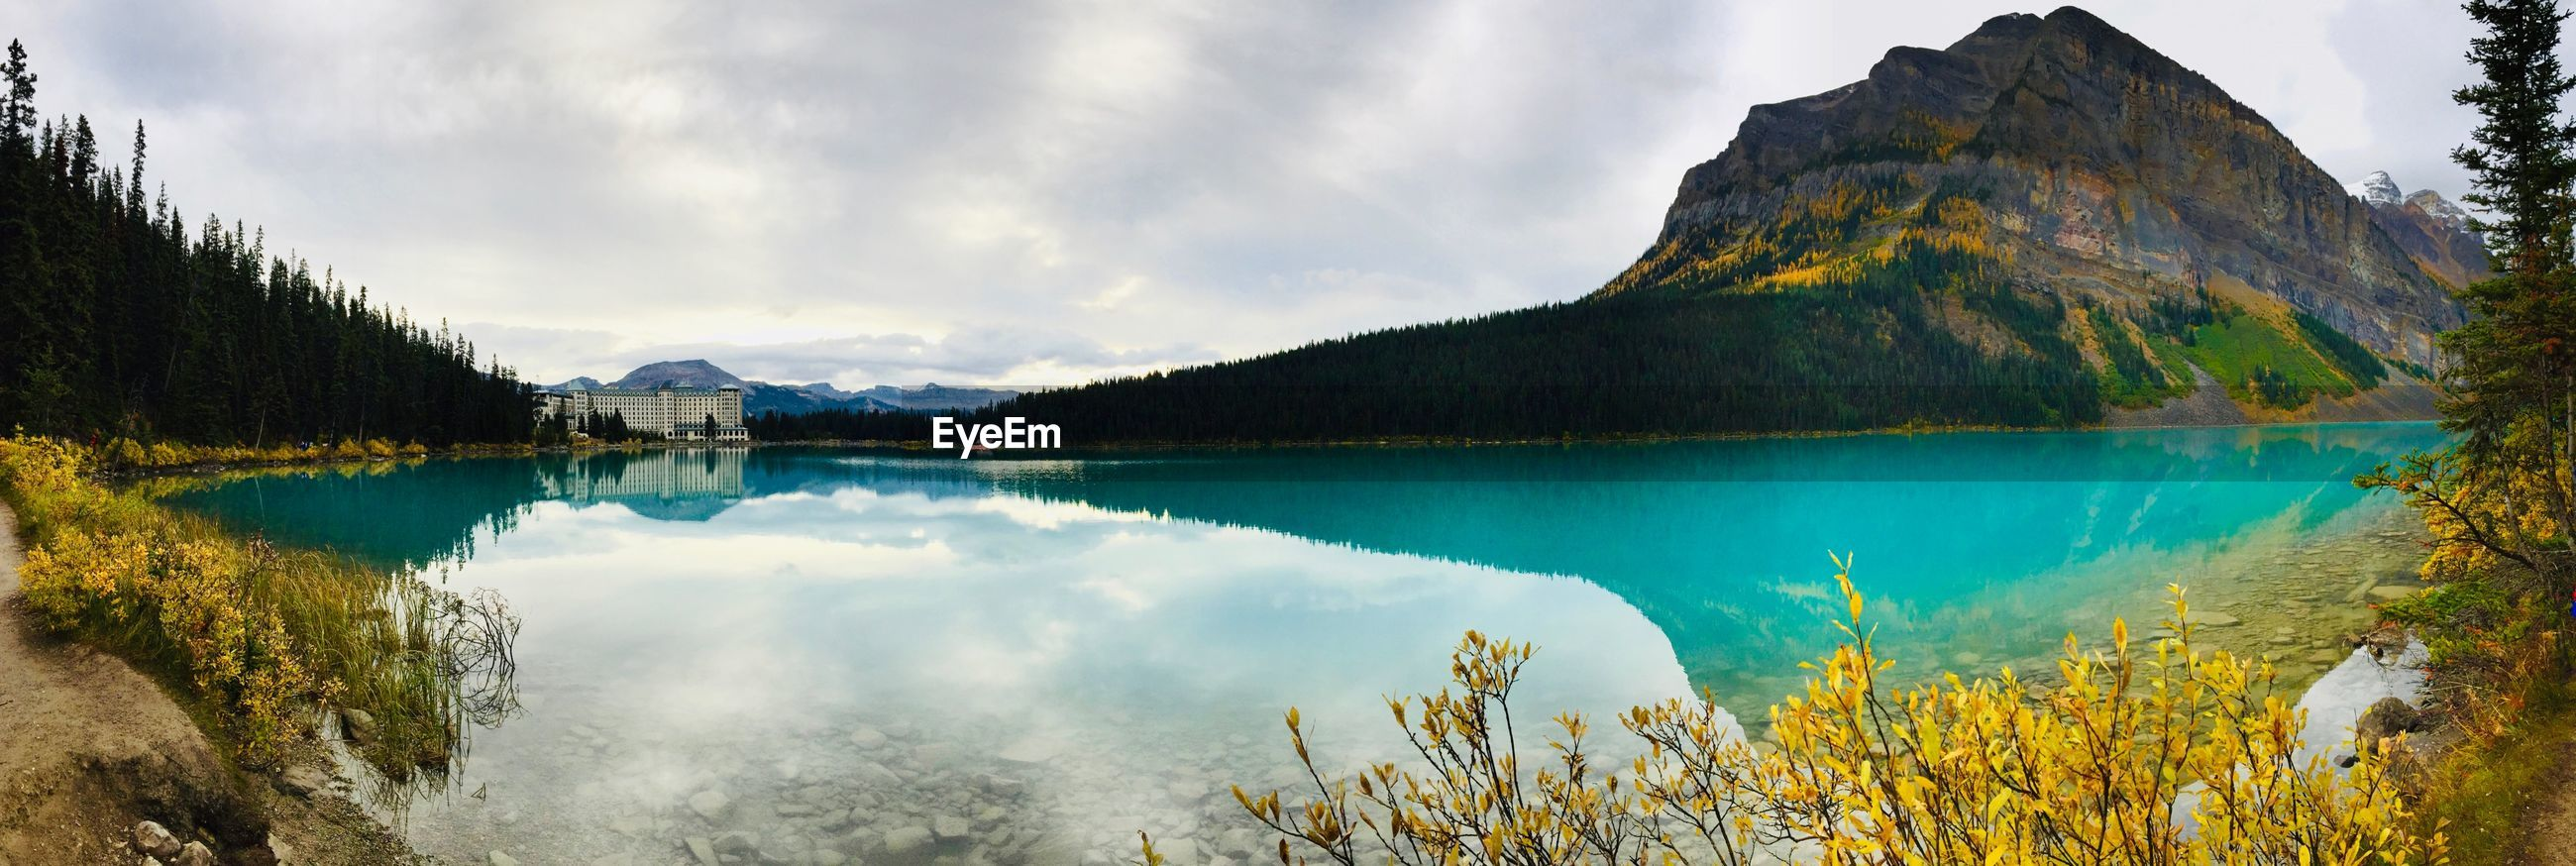 PANORAMIC VIEW OF LAKE AMIDST MOUNTAINS AGAINST SKY